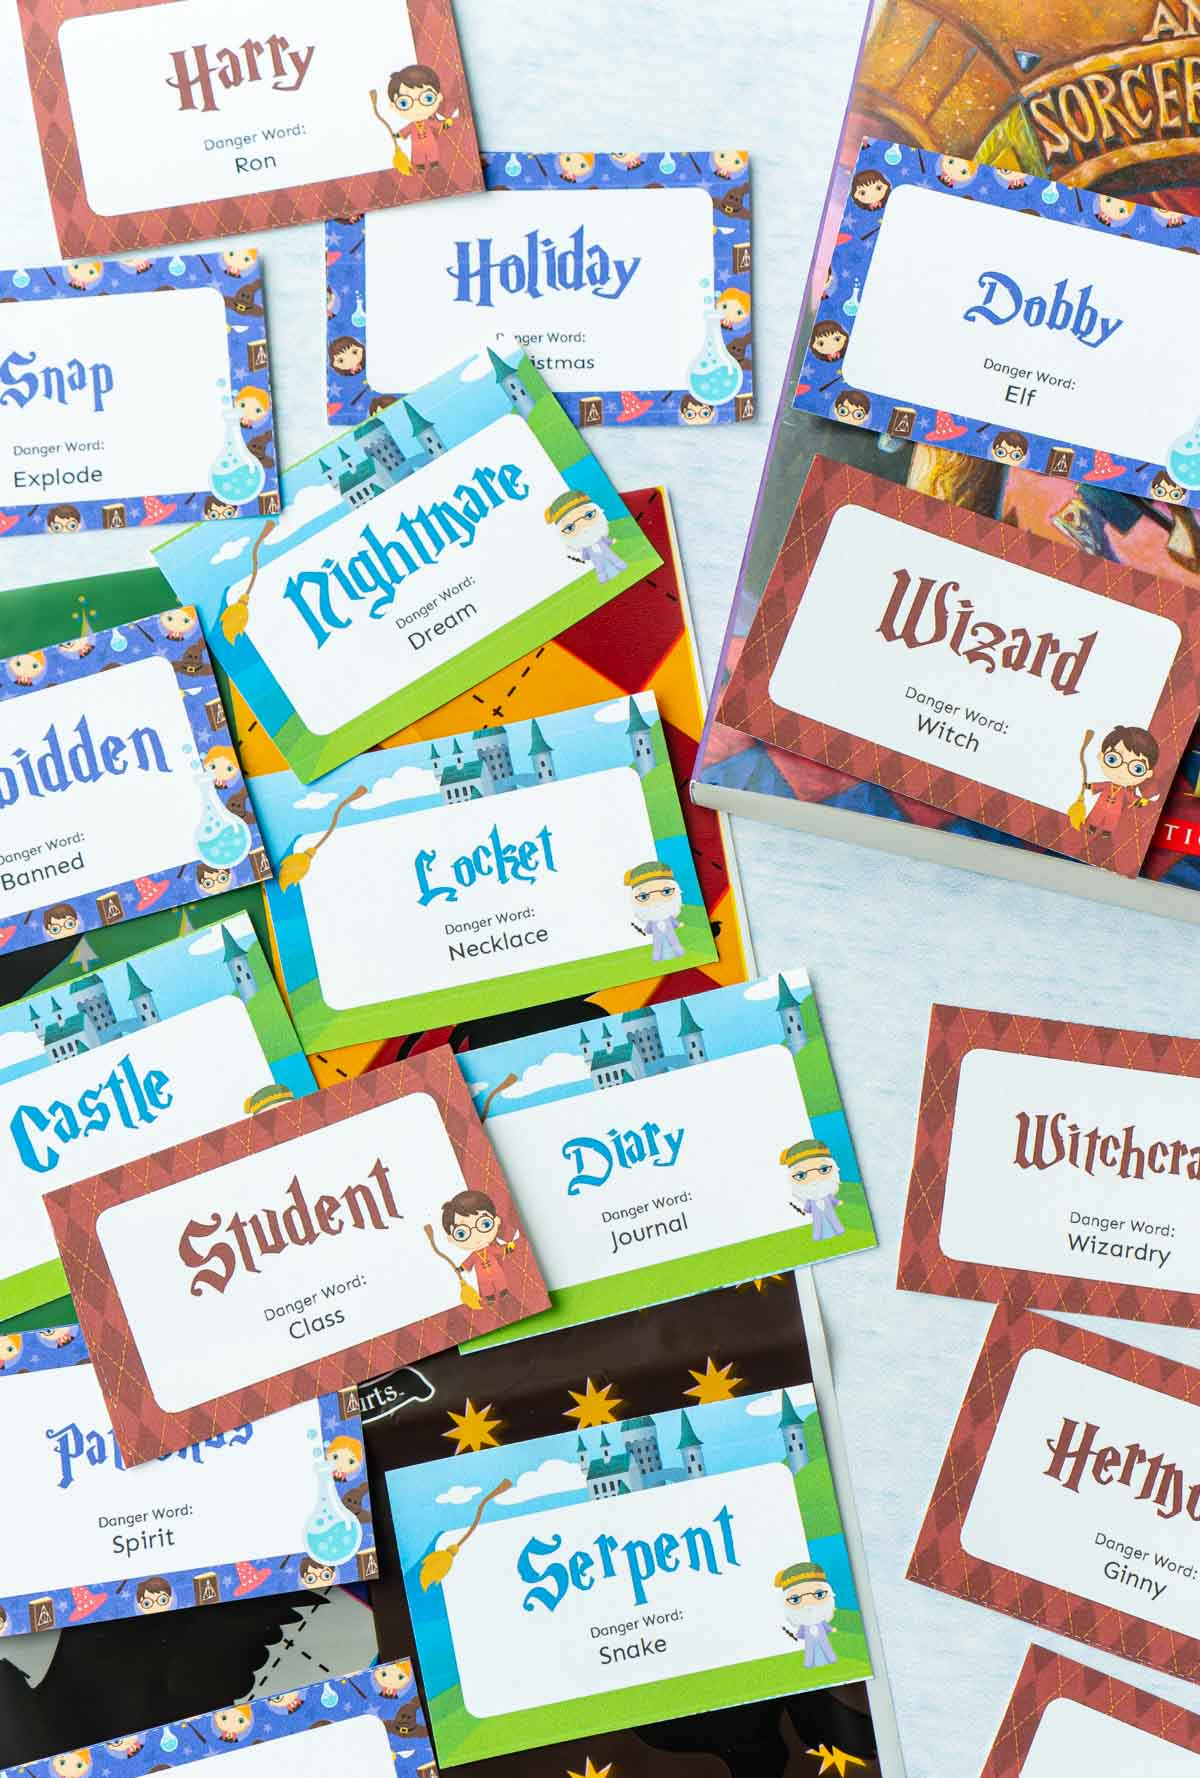 Little cards with Harry Potter words on them for a Harry Potter danger word game